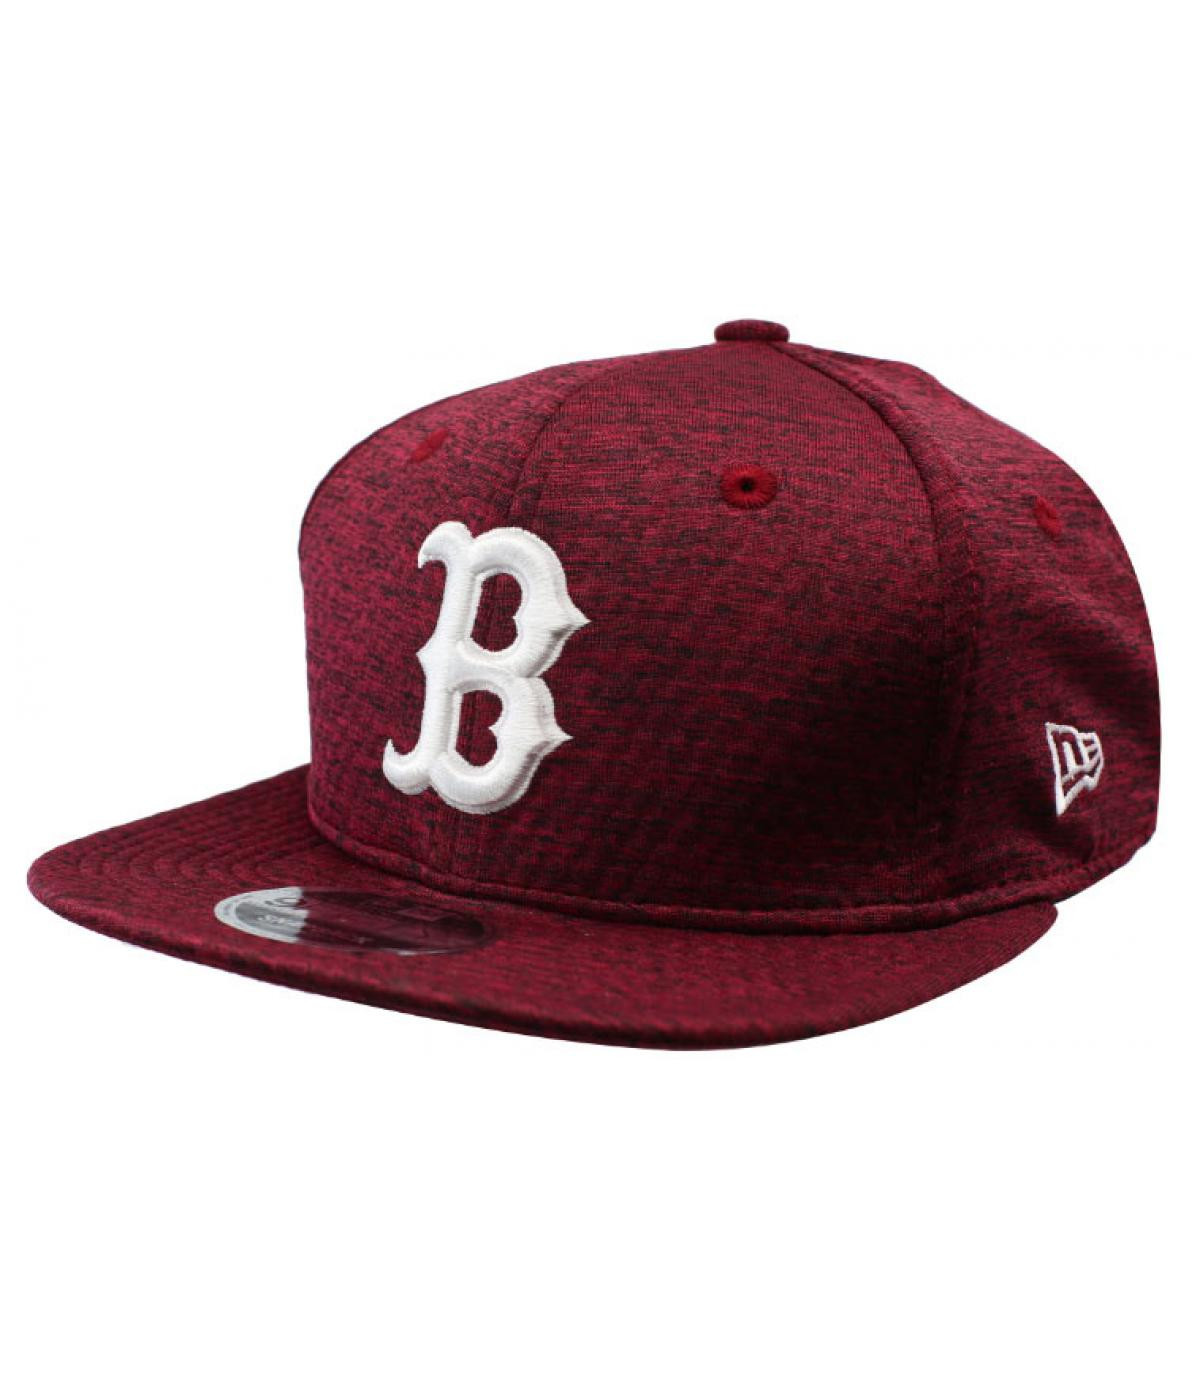 Details Dry Switch Boston 9Fifty cardinal - afbeeling 2